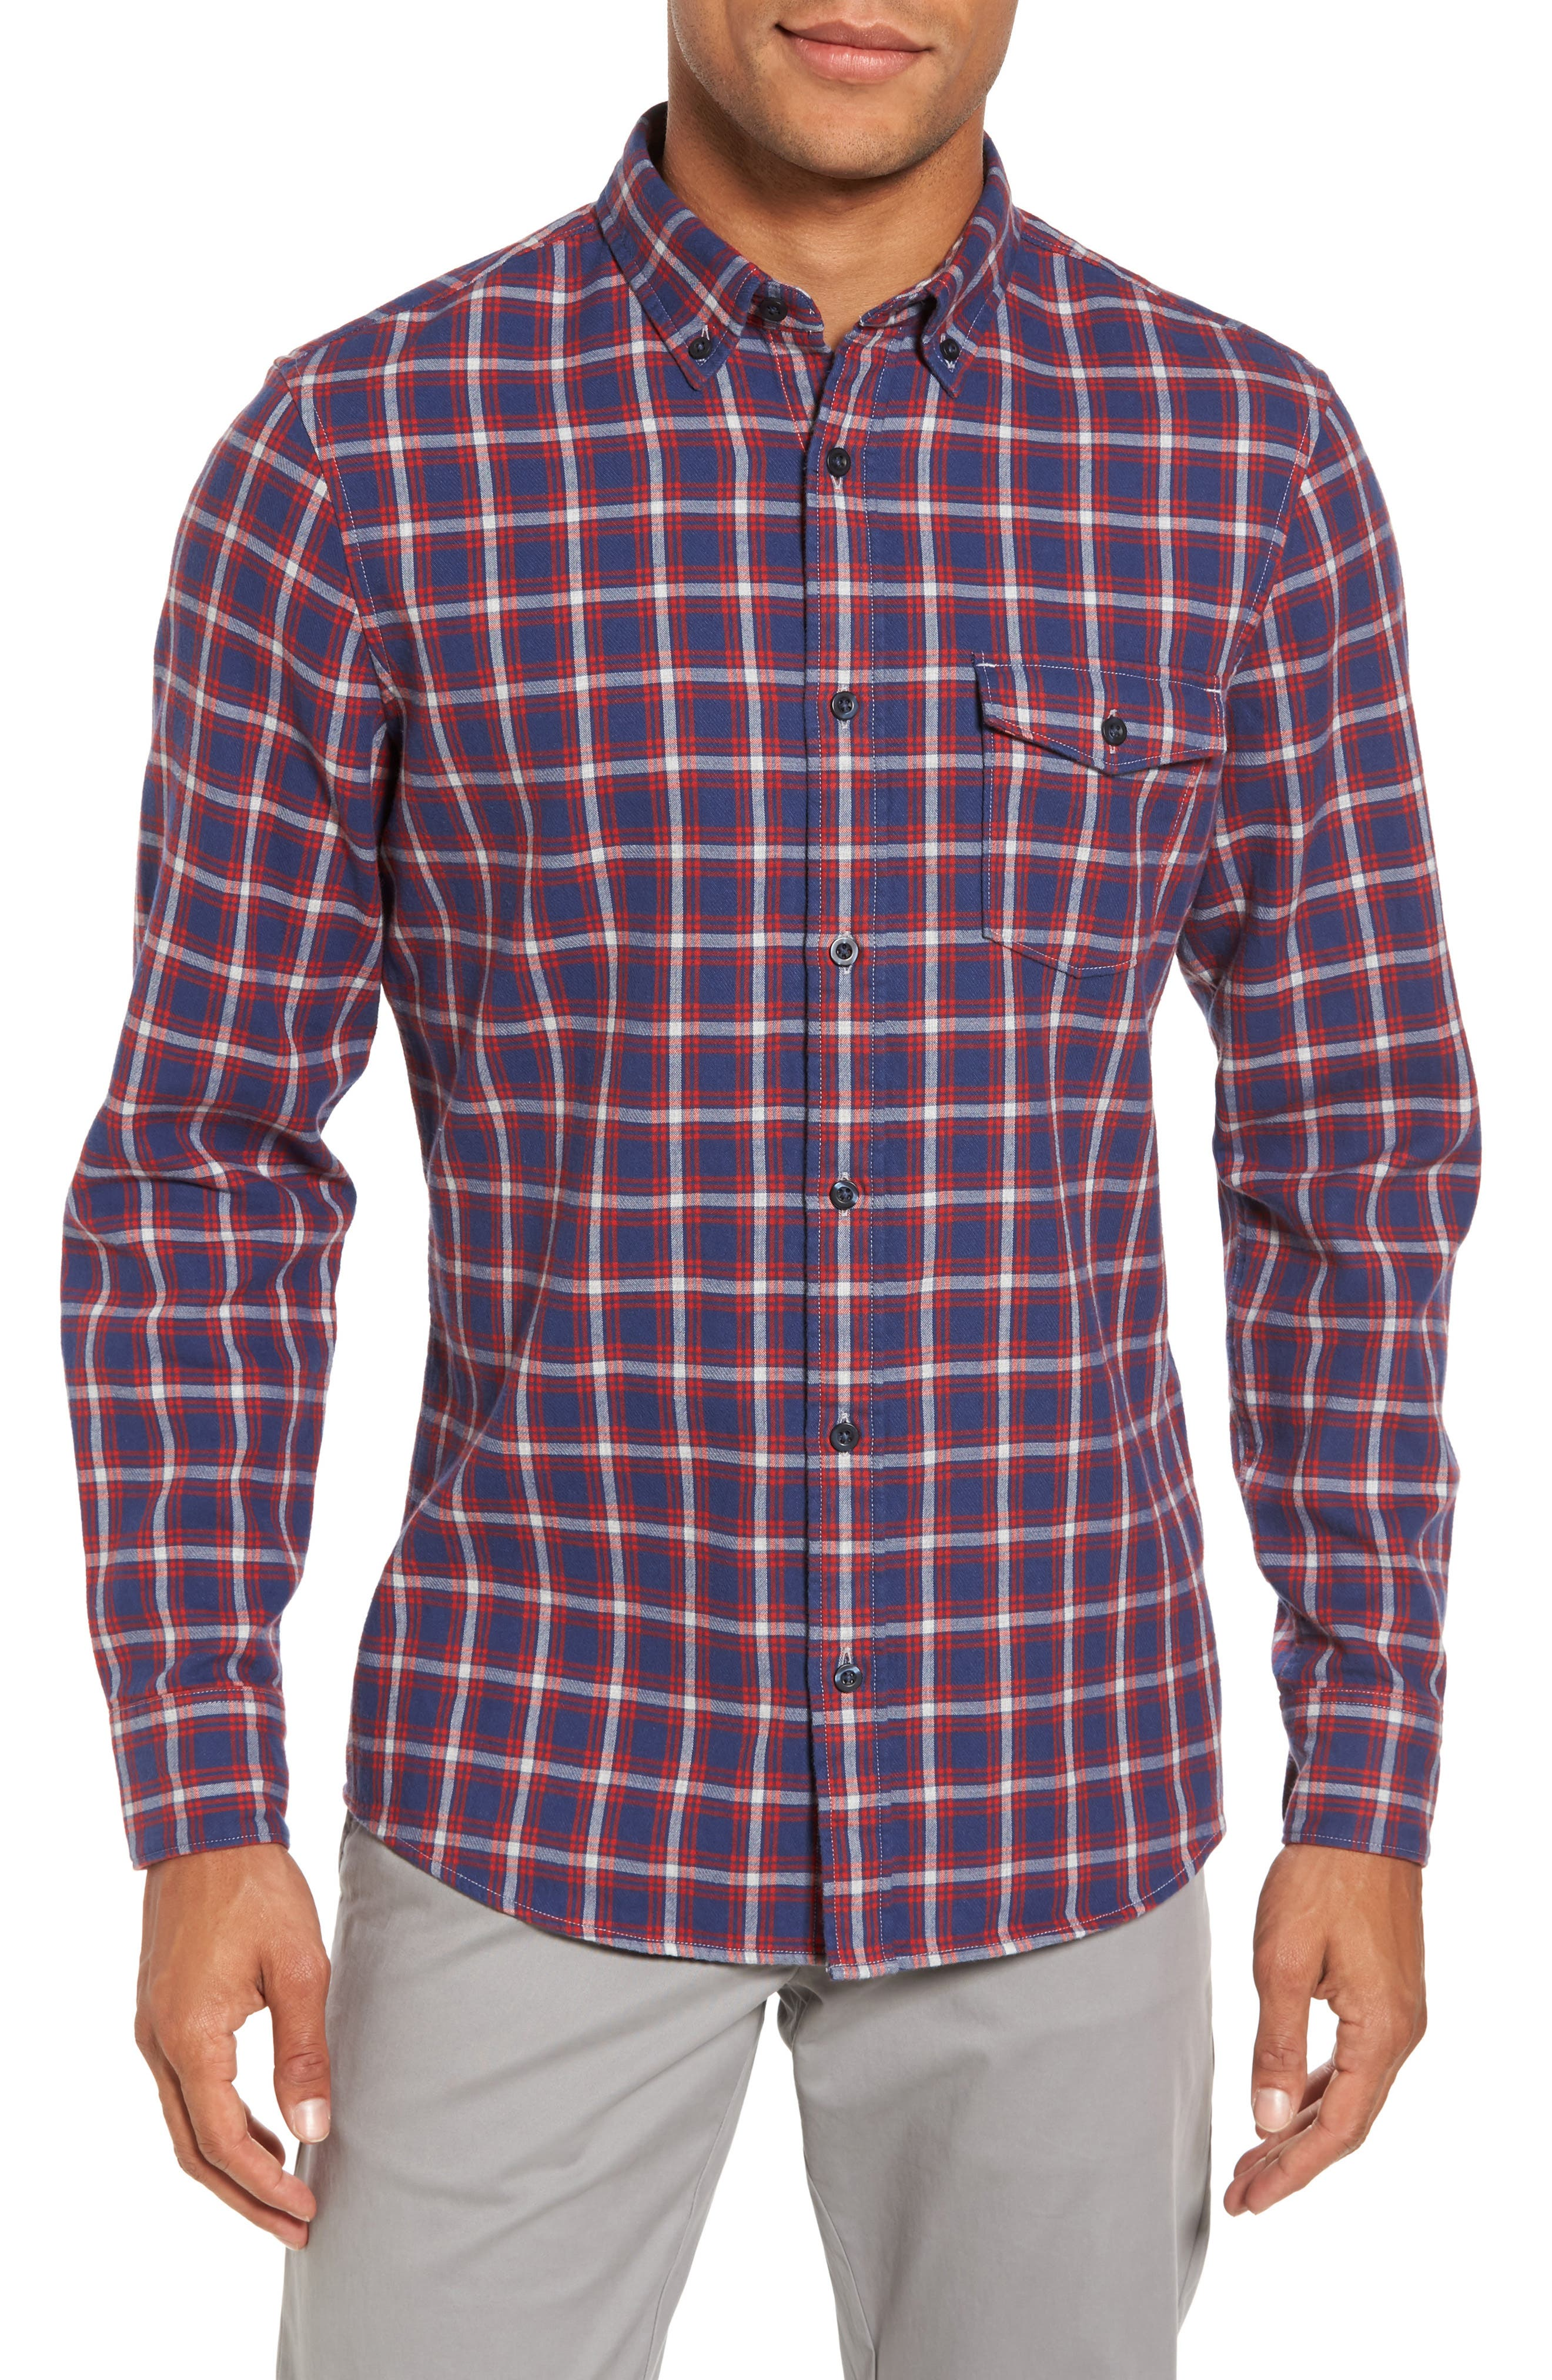 Trim Fit Duofold Check Sport Shirt,                         Main,                         color, Navy Iris Red Plaid Duofold